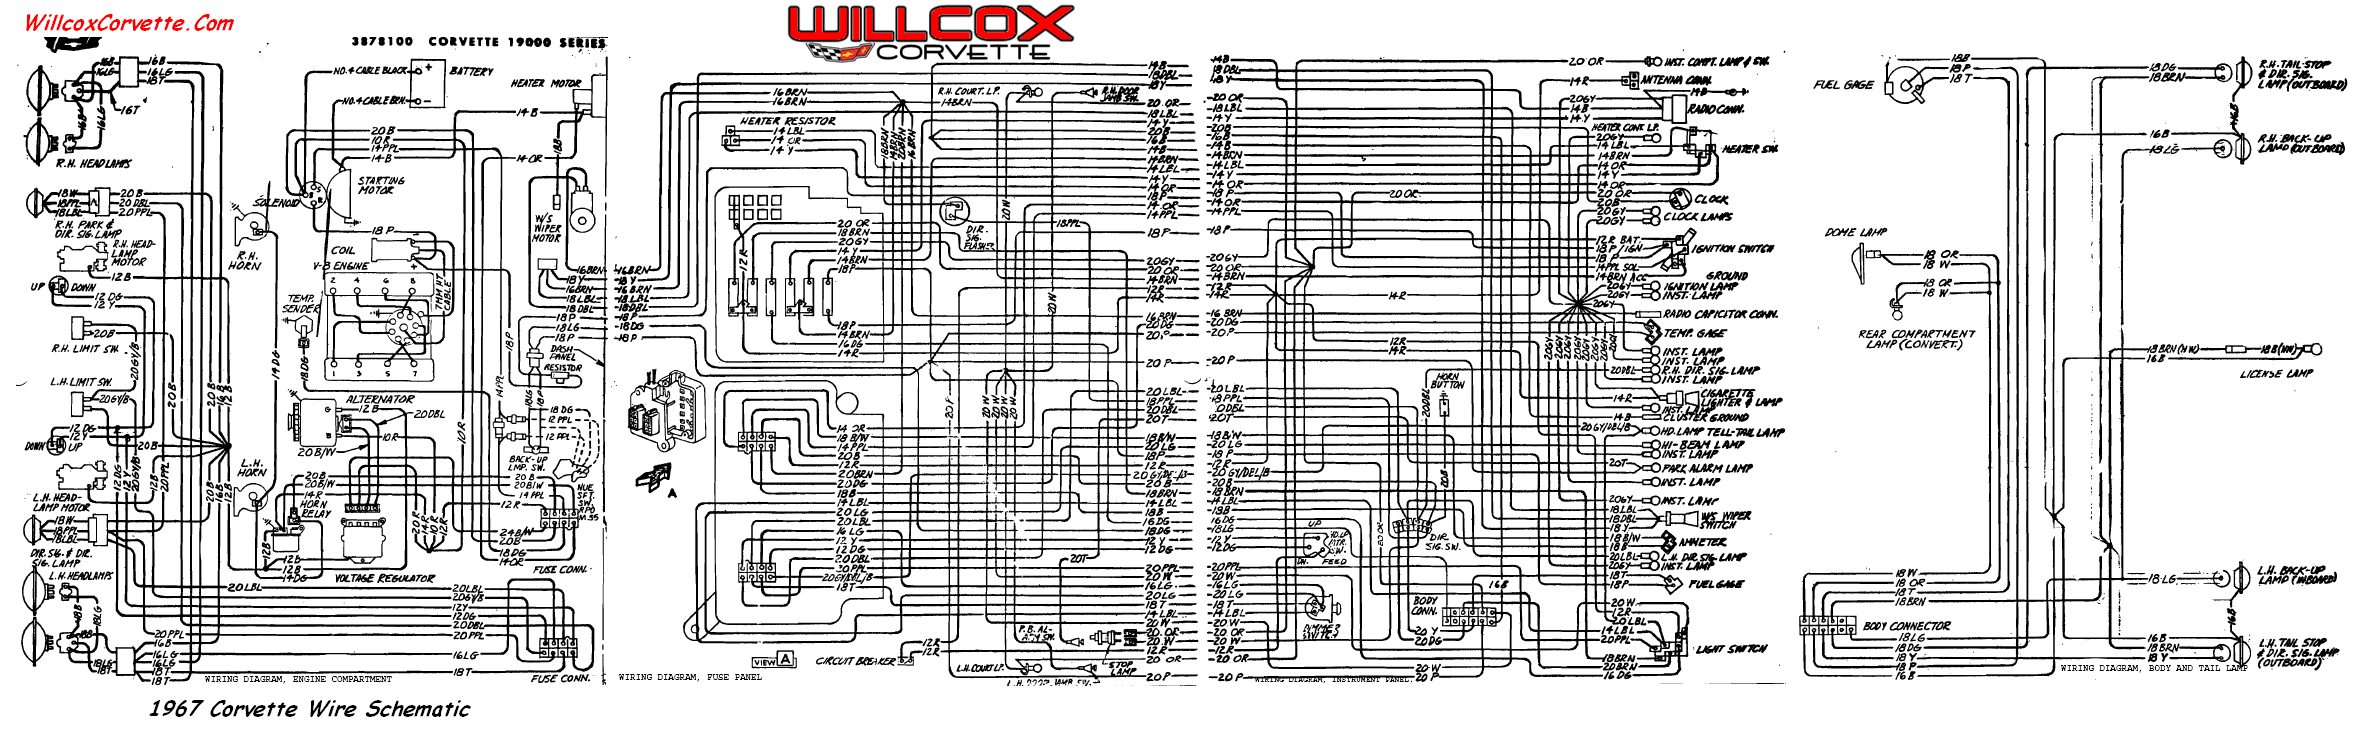 67 wire schematic for tracing wires wiring diagram for 1966 corvette readingrat net 66 Corvette at mr168.co